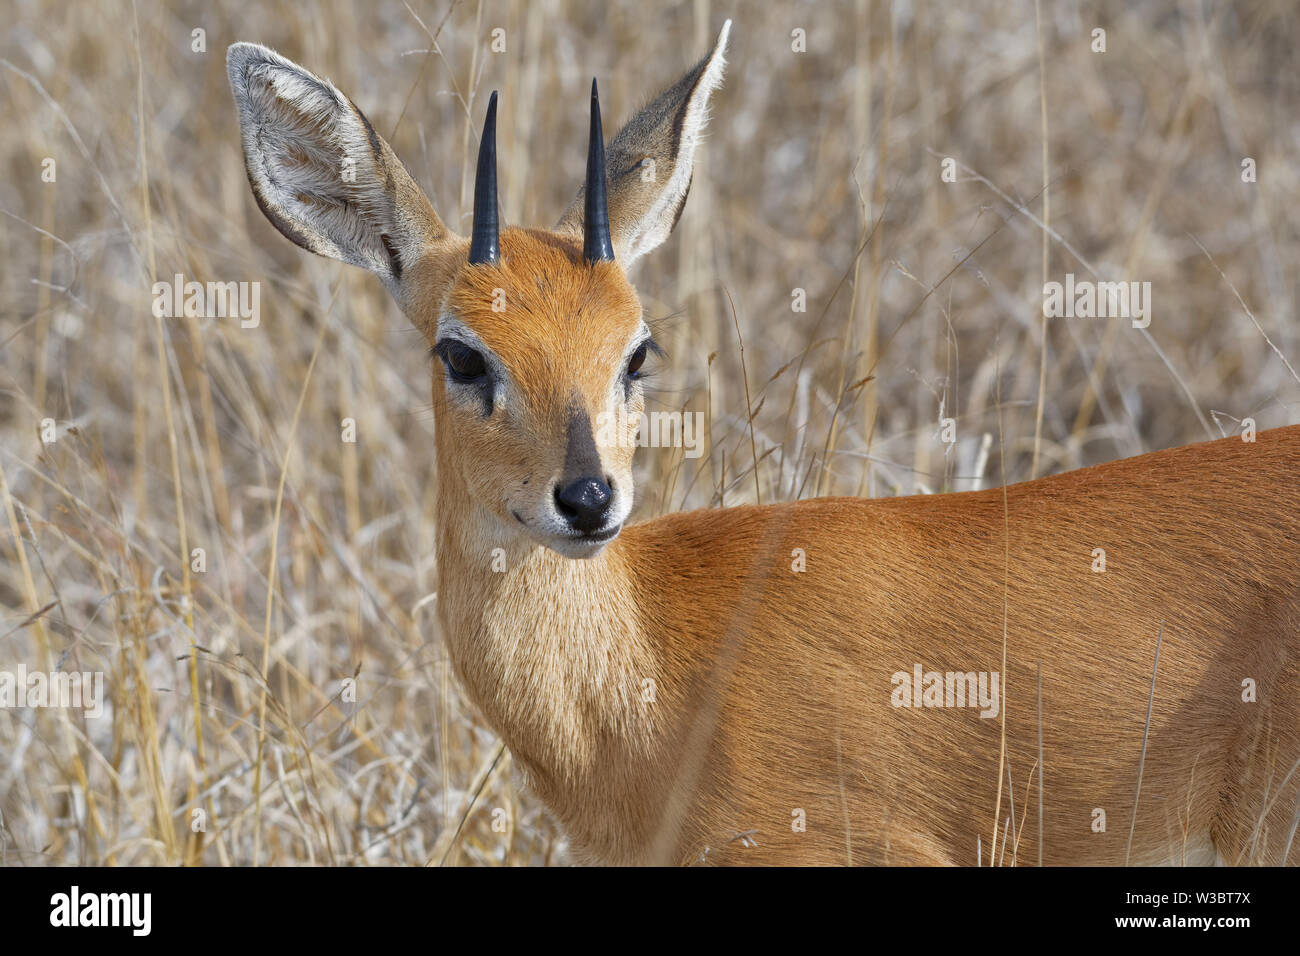 Steenbok (Raphicerus campestris), adult male standing in the dry grassland, attentive, animal portrait, Kruger National Park, South Africa, Africa - Stock Image